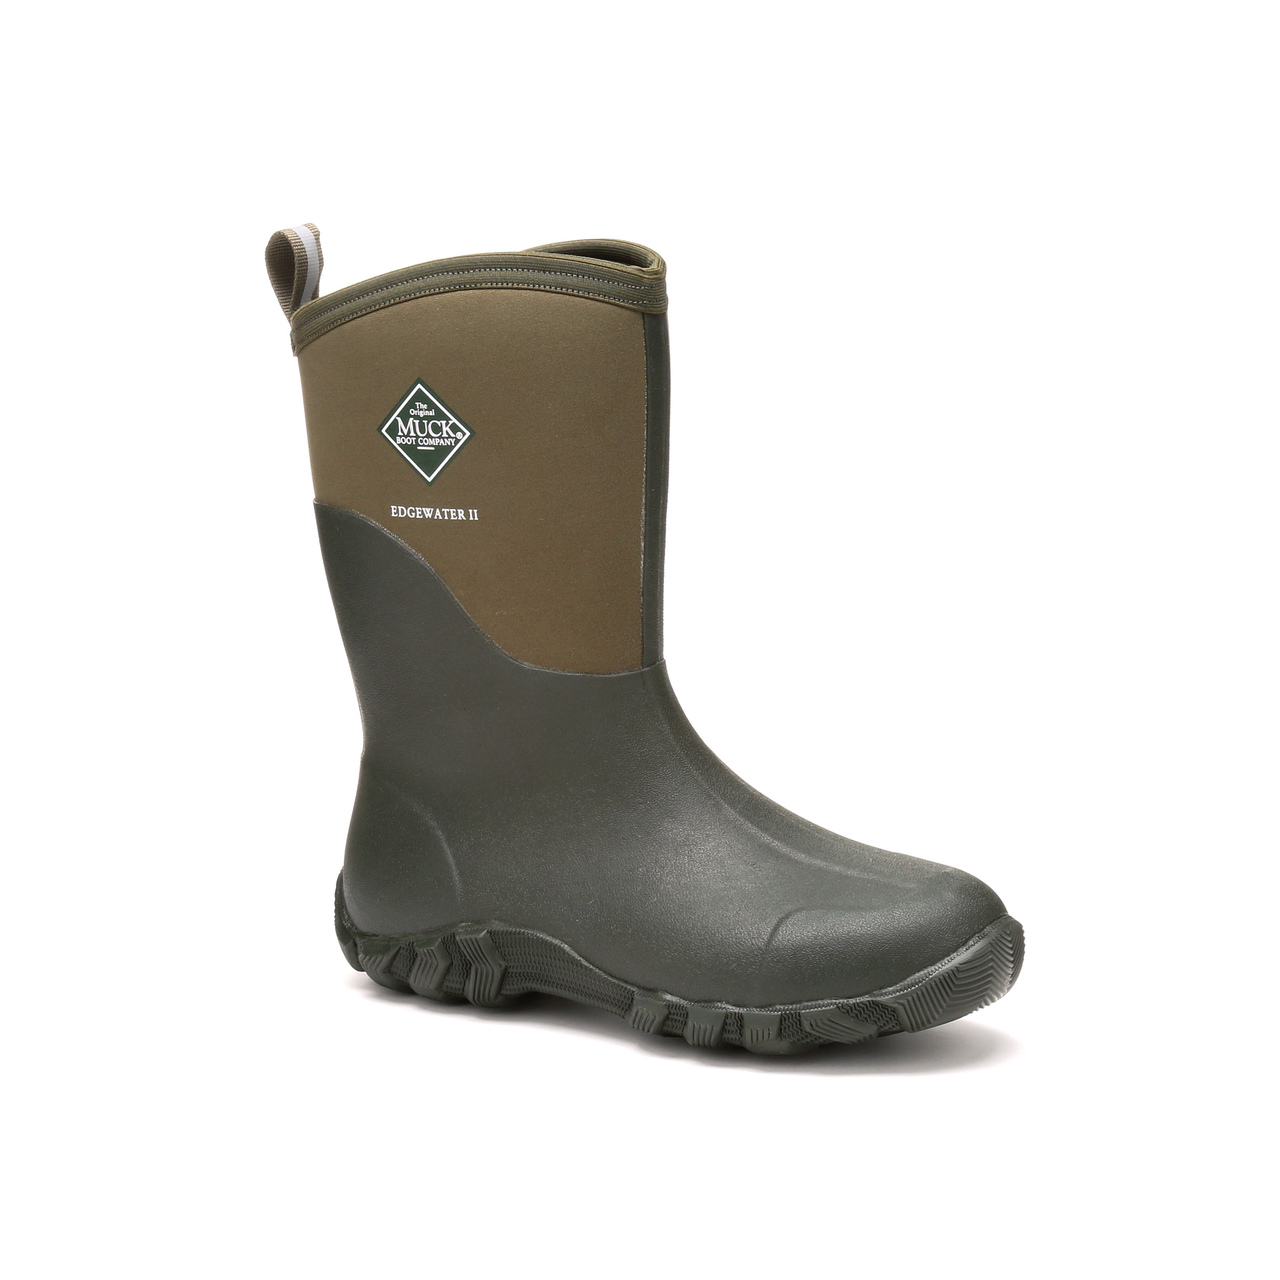 Muck Boots Edgewater Mid Classic Muck Style Boot-Moss | eBay